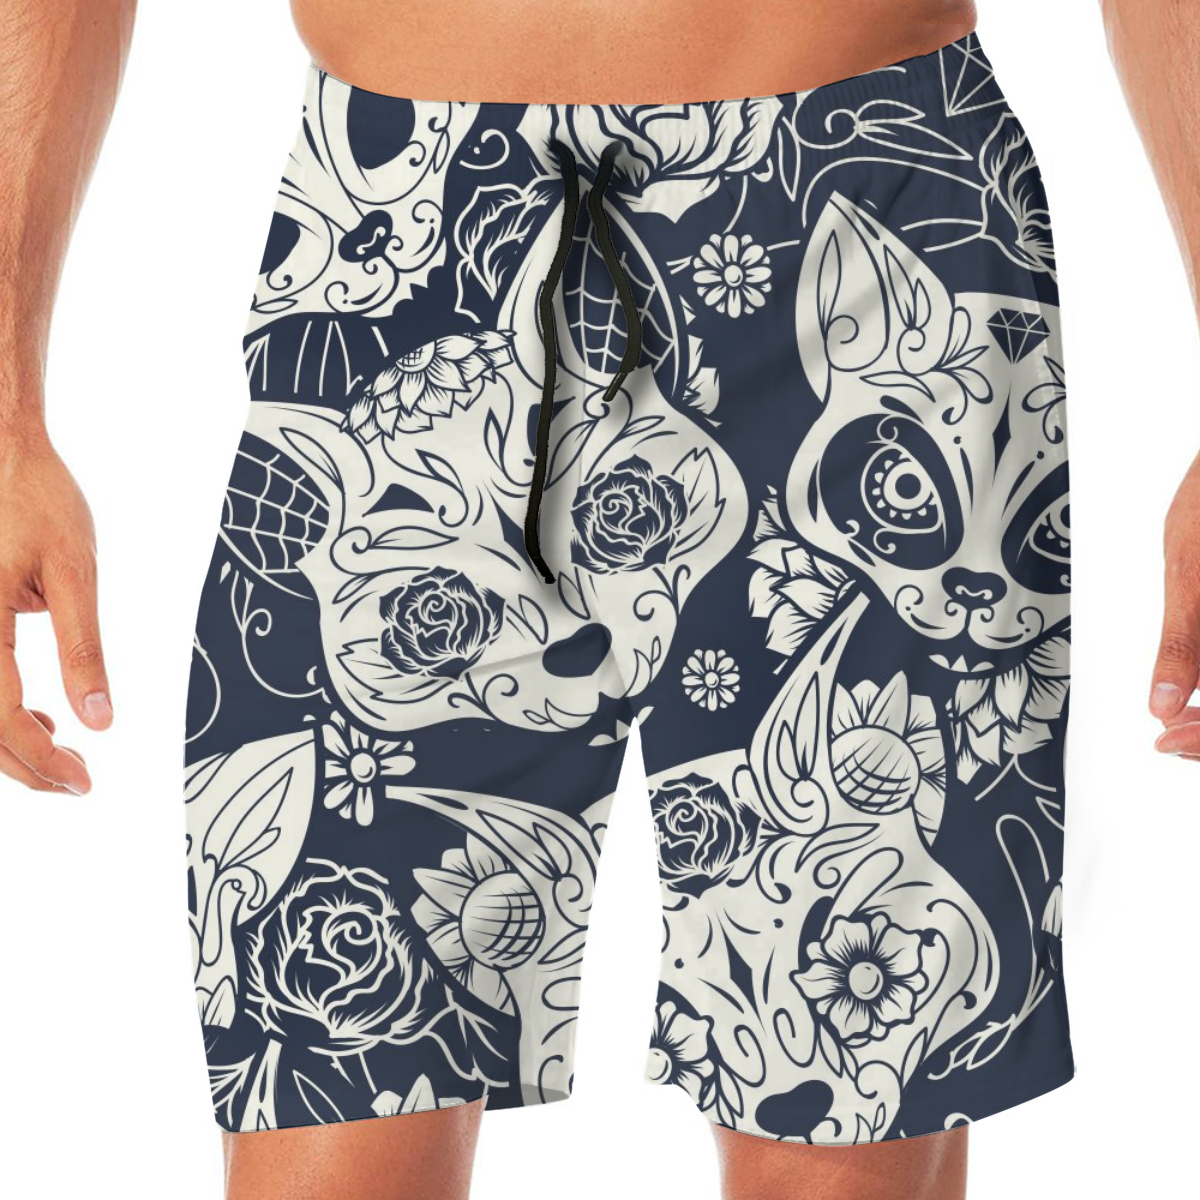 Day Of The Dead Sugar Cat Skull Floral Swimming Shorts For Men Swimwear Man Swimsuit Swim Trunks Summer Bathing Beach Wear